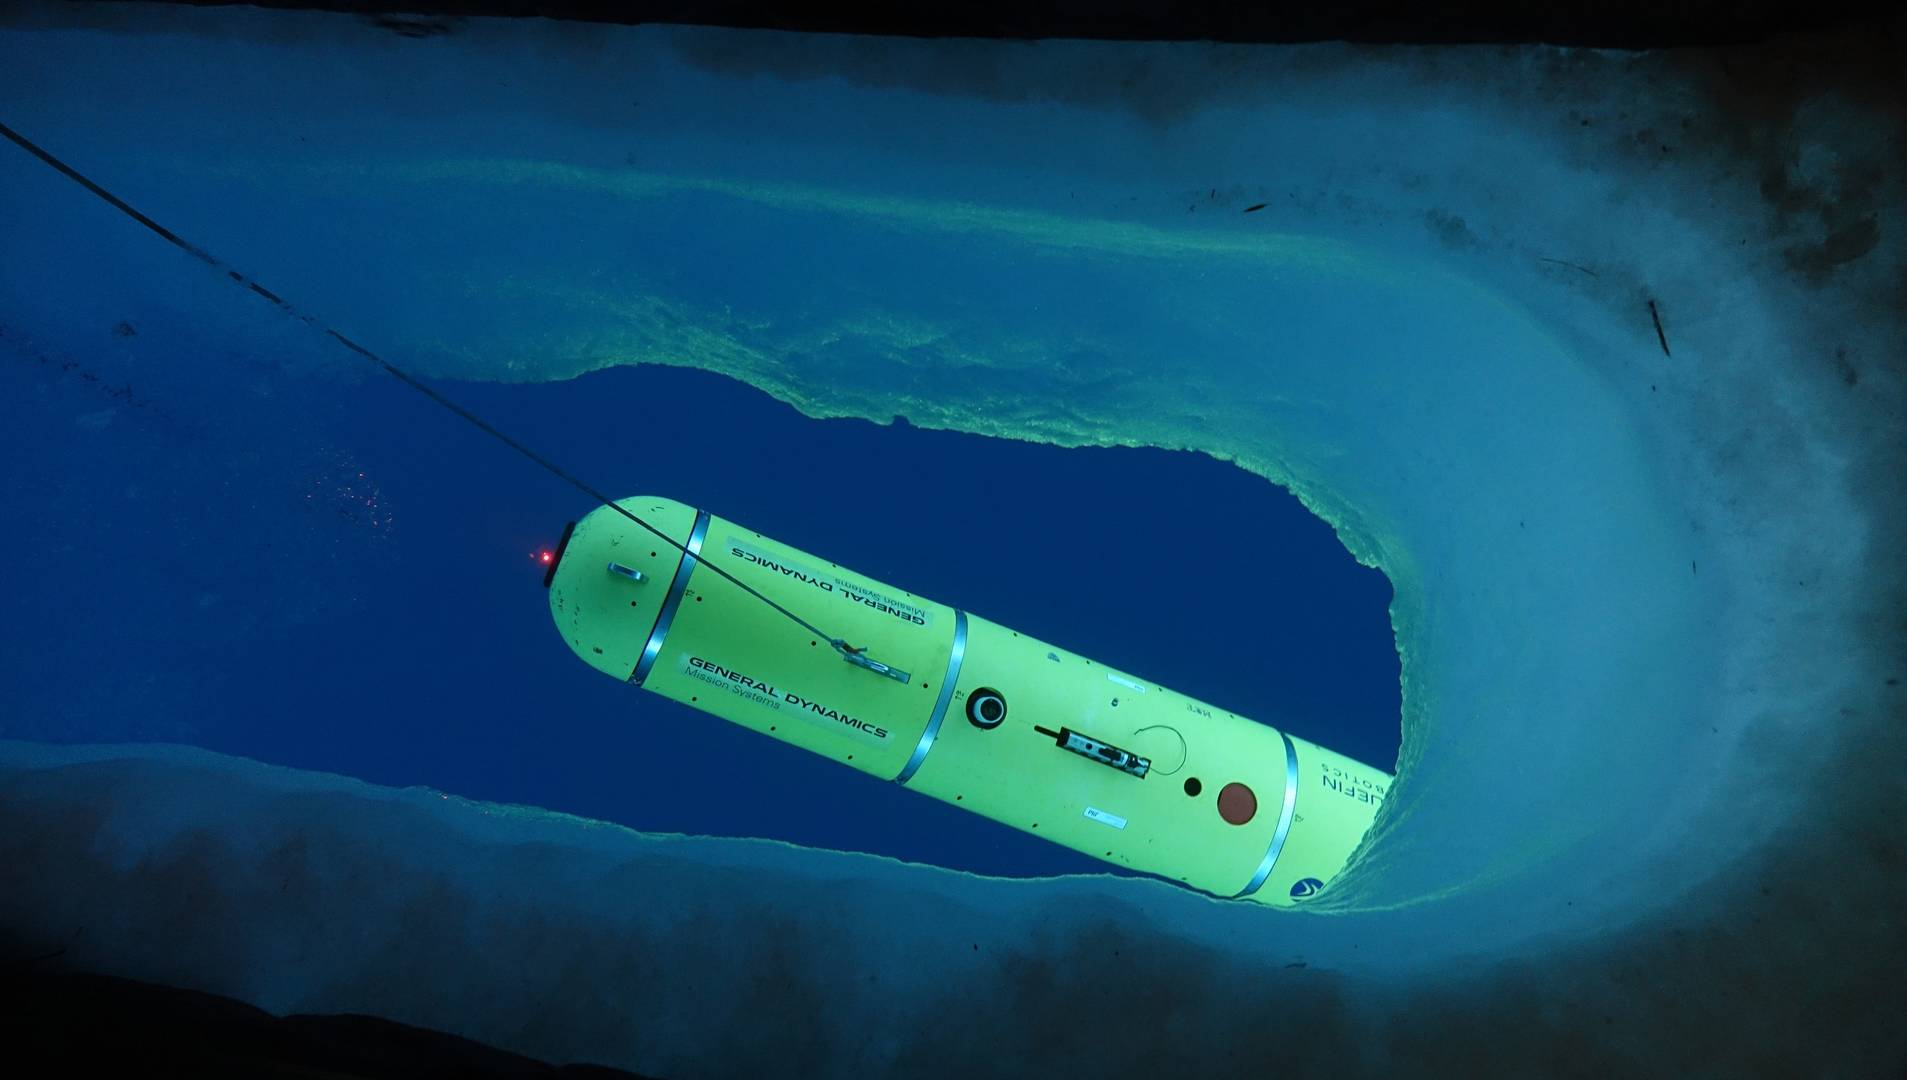 Bluefin UUV deep dive in ice at icex